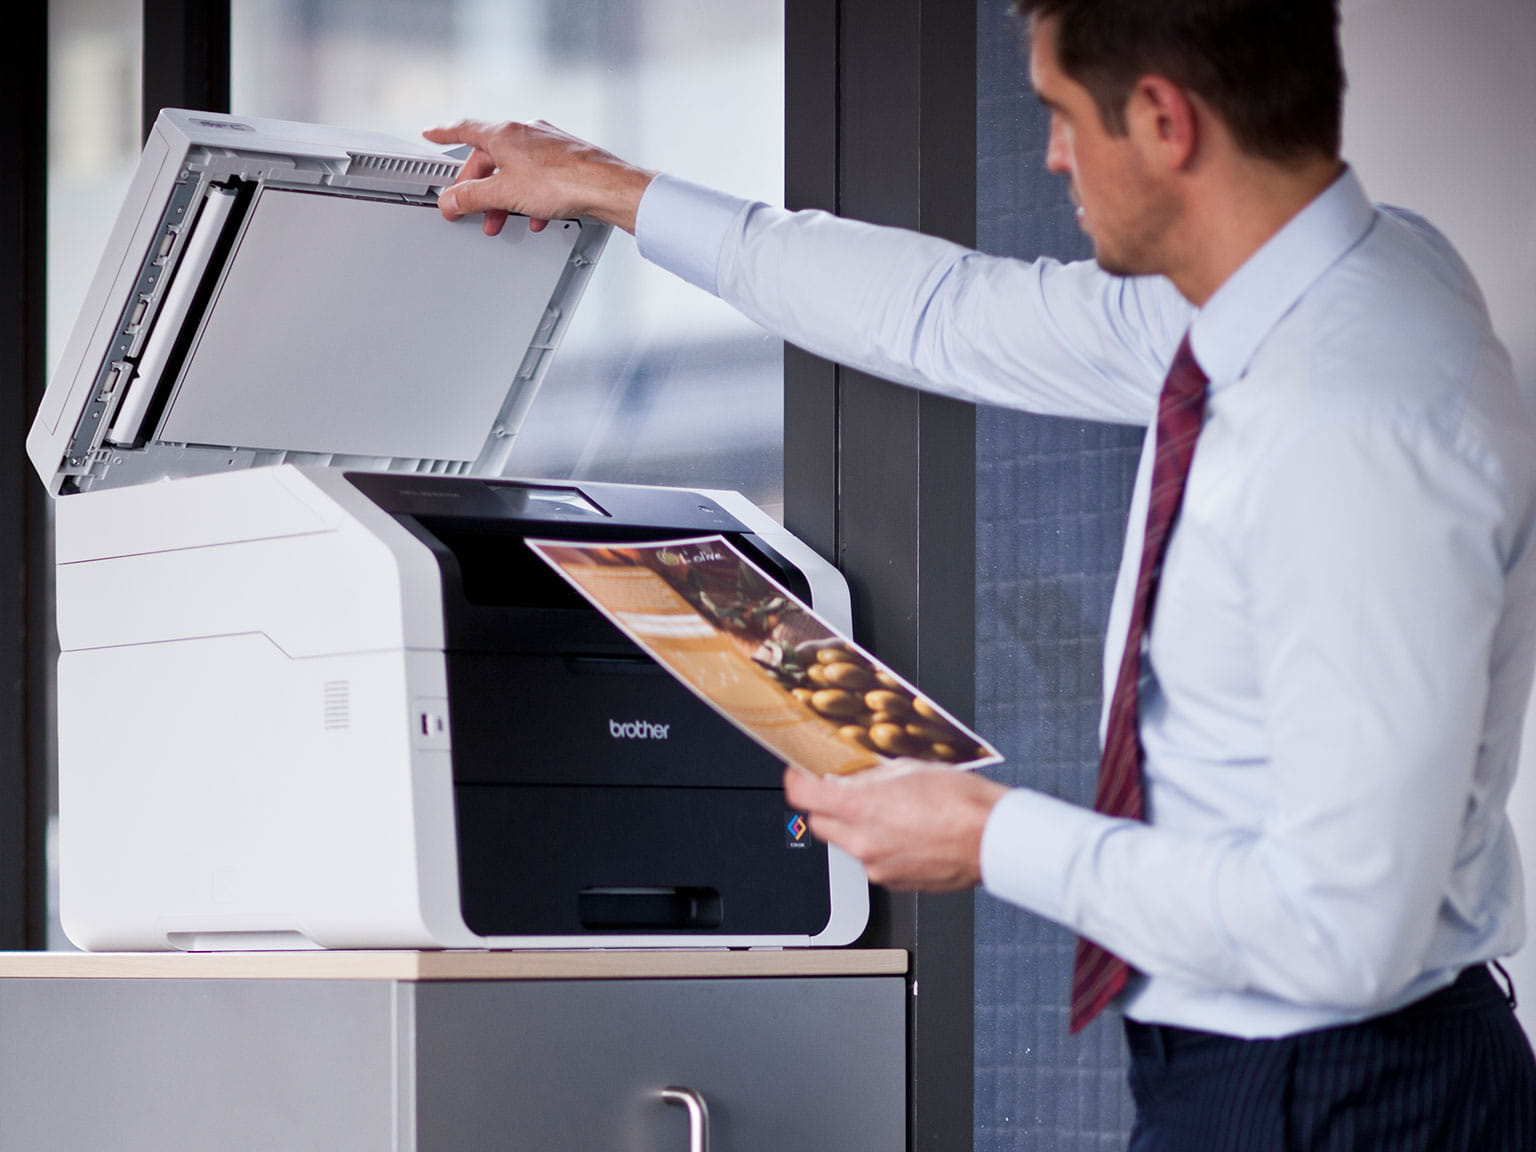 Man using a Brother printer in the office